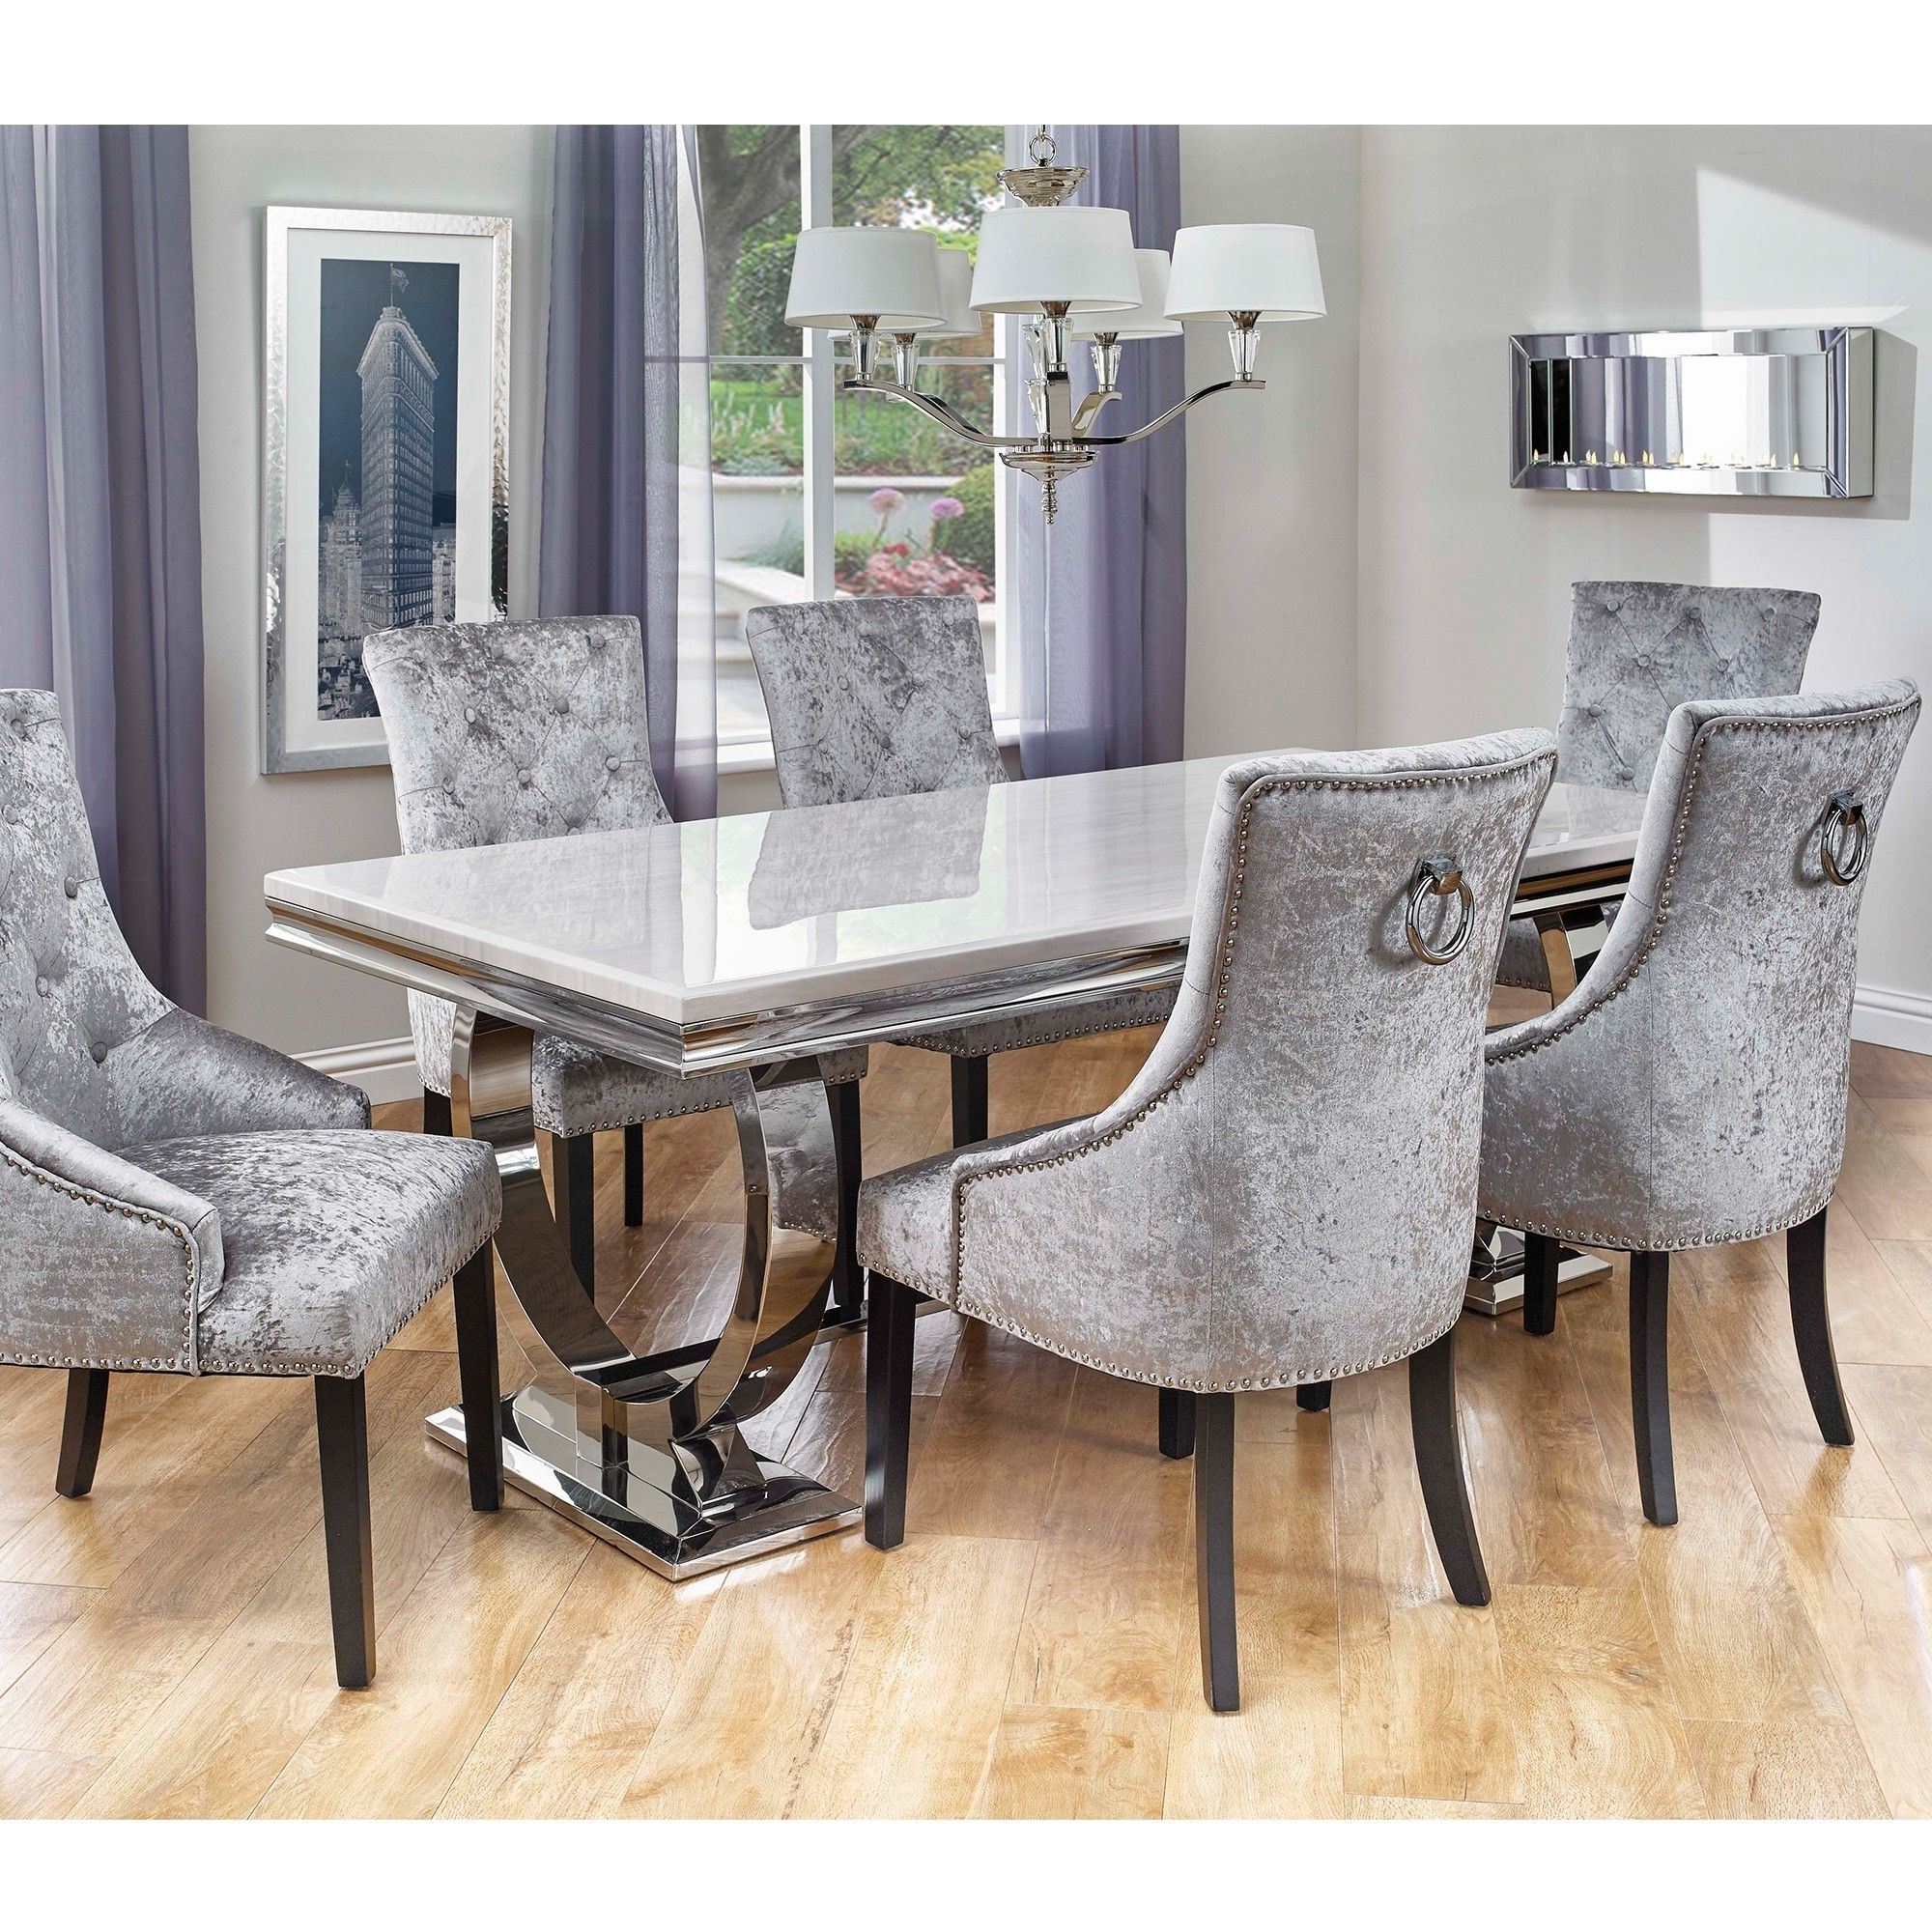 Current Dining Tables And 6 Chairs With Regard To Pinbesthomezone On Dining Room & Bar Furniture (View 3 of 25)